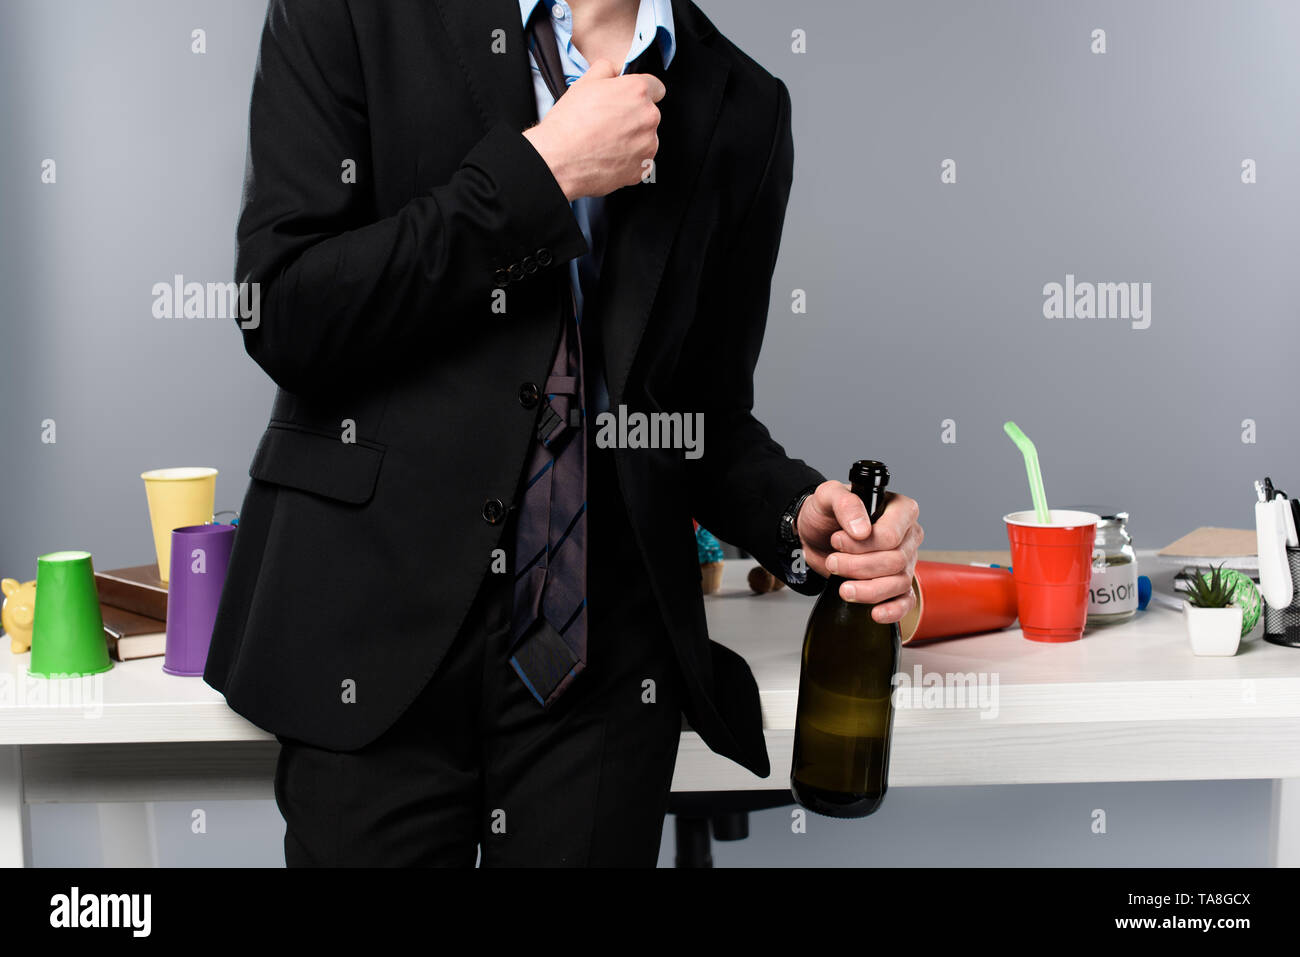 cropped view of drunk businessman standing near workplace with bottle of champagne - Stock Image